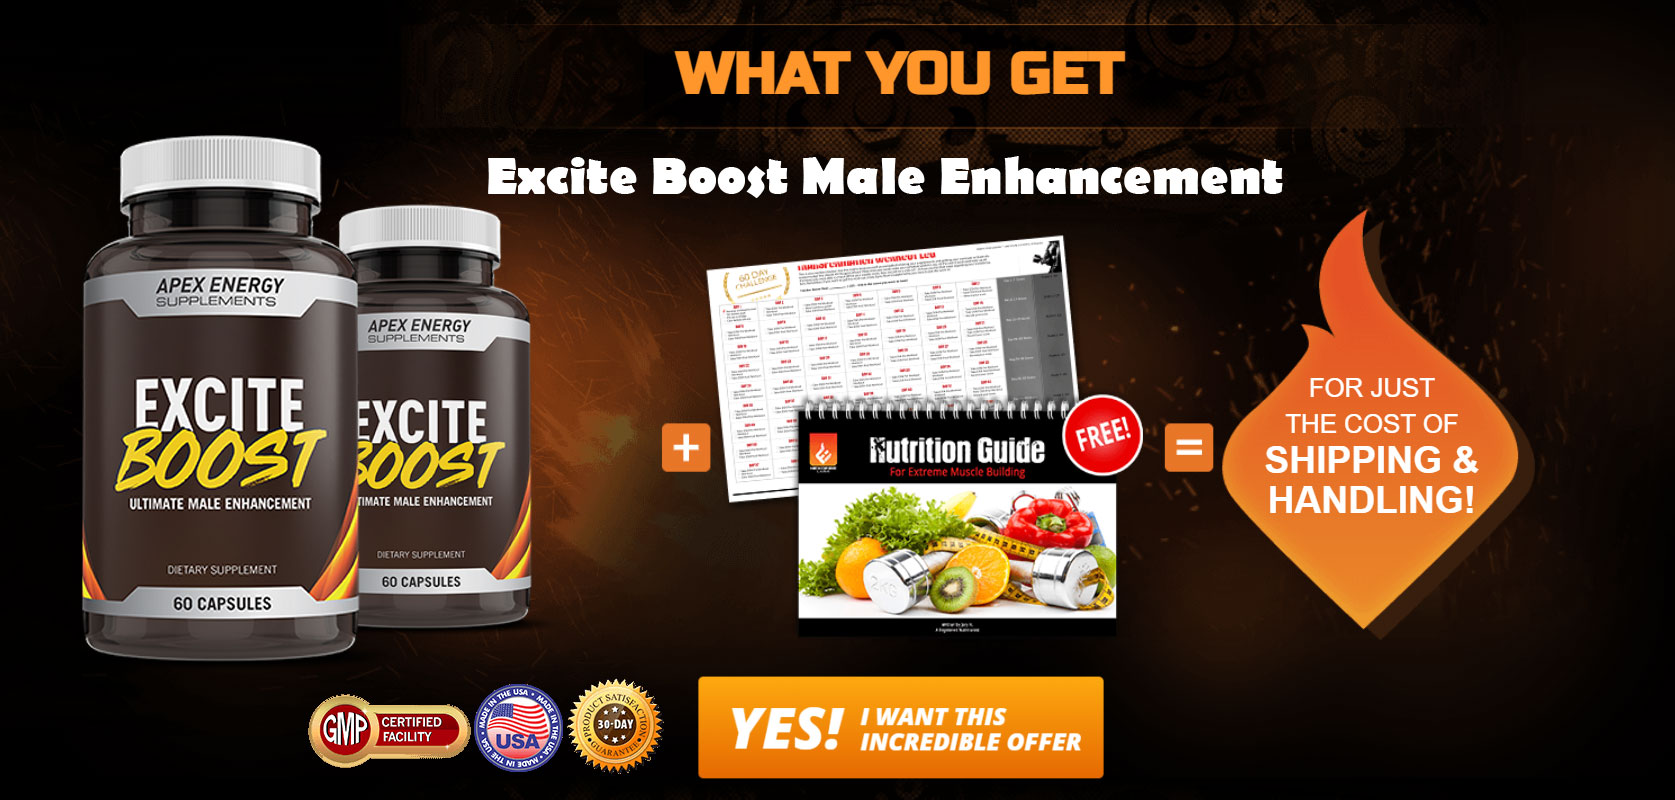 Excite-Boost-Male-Enhancement1